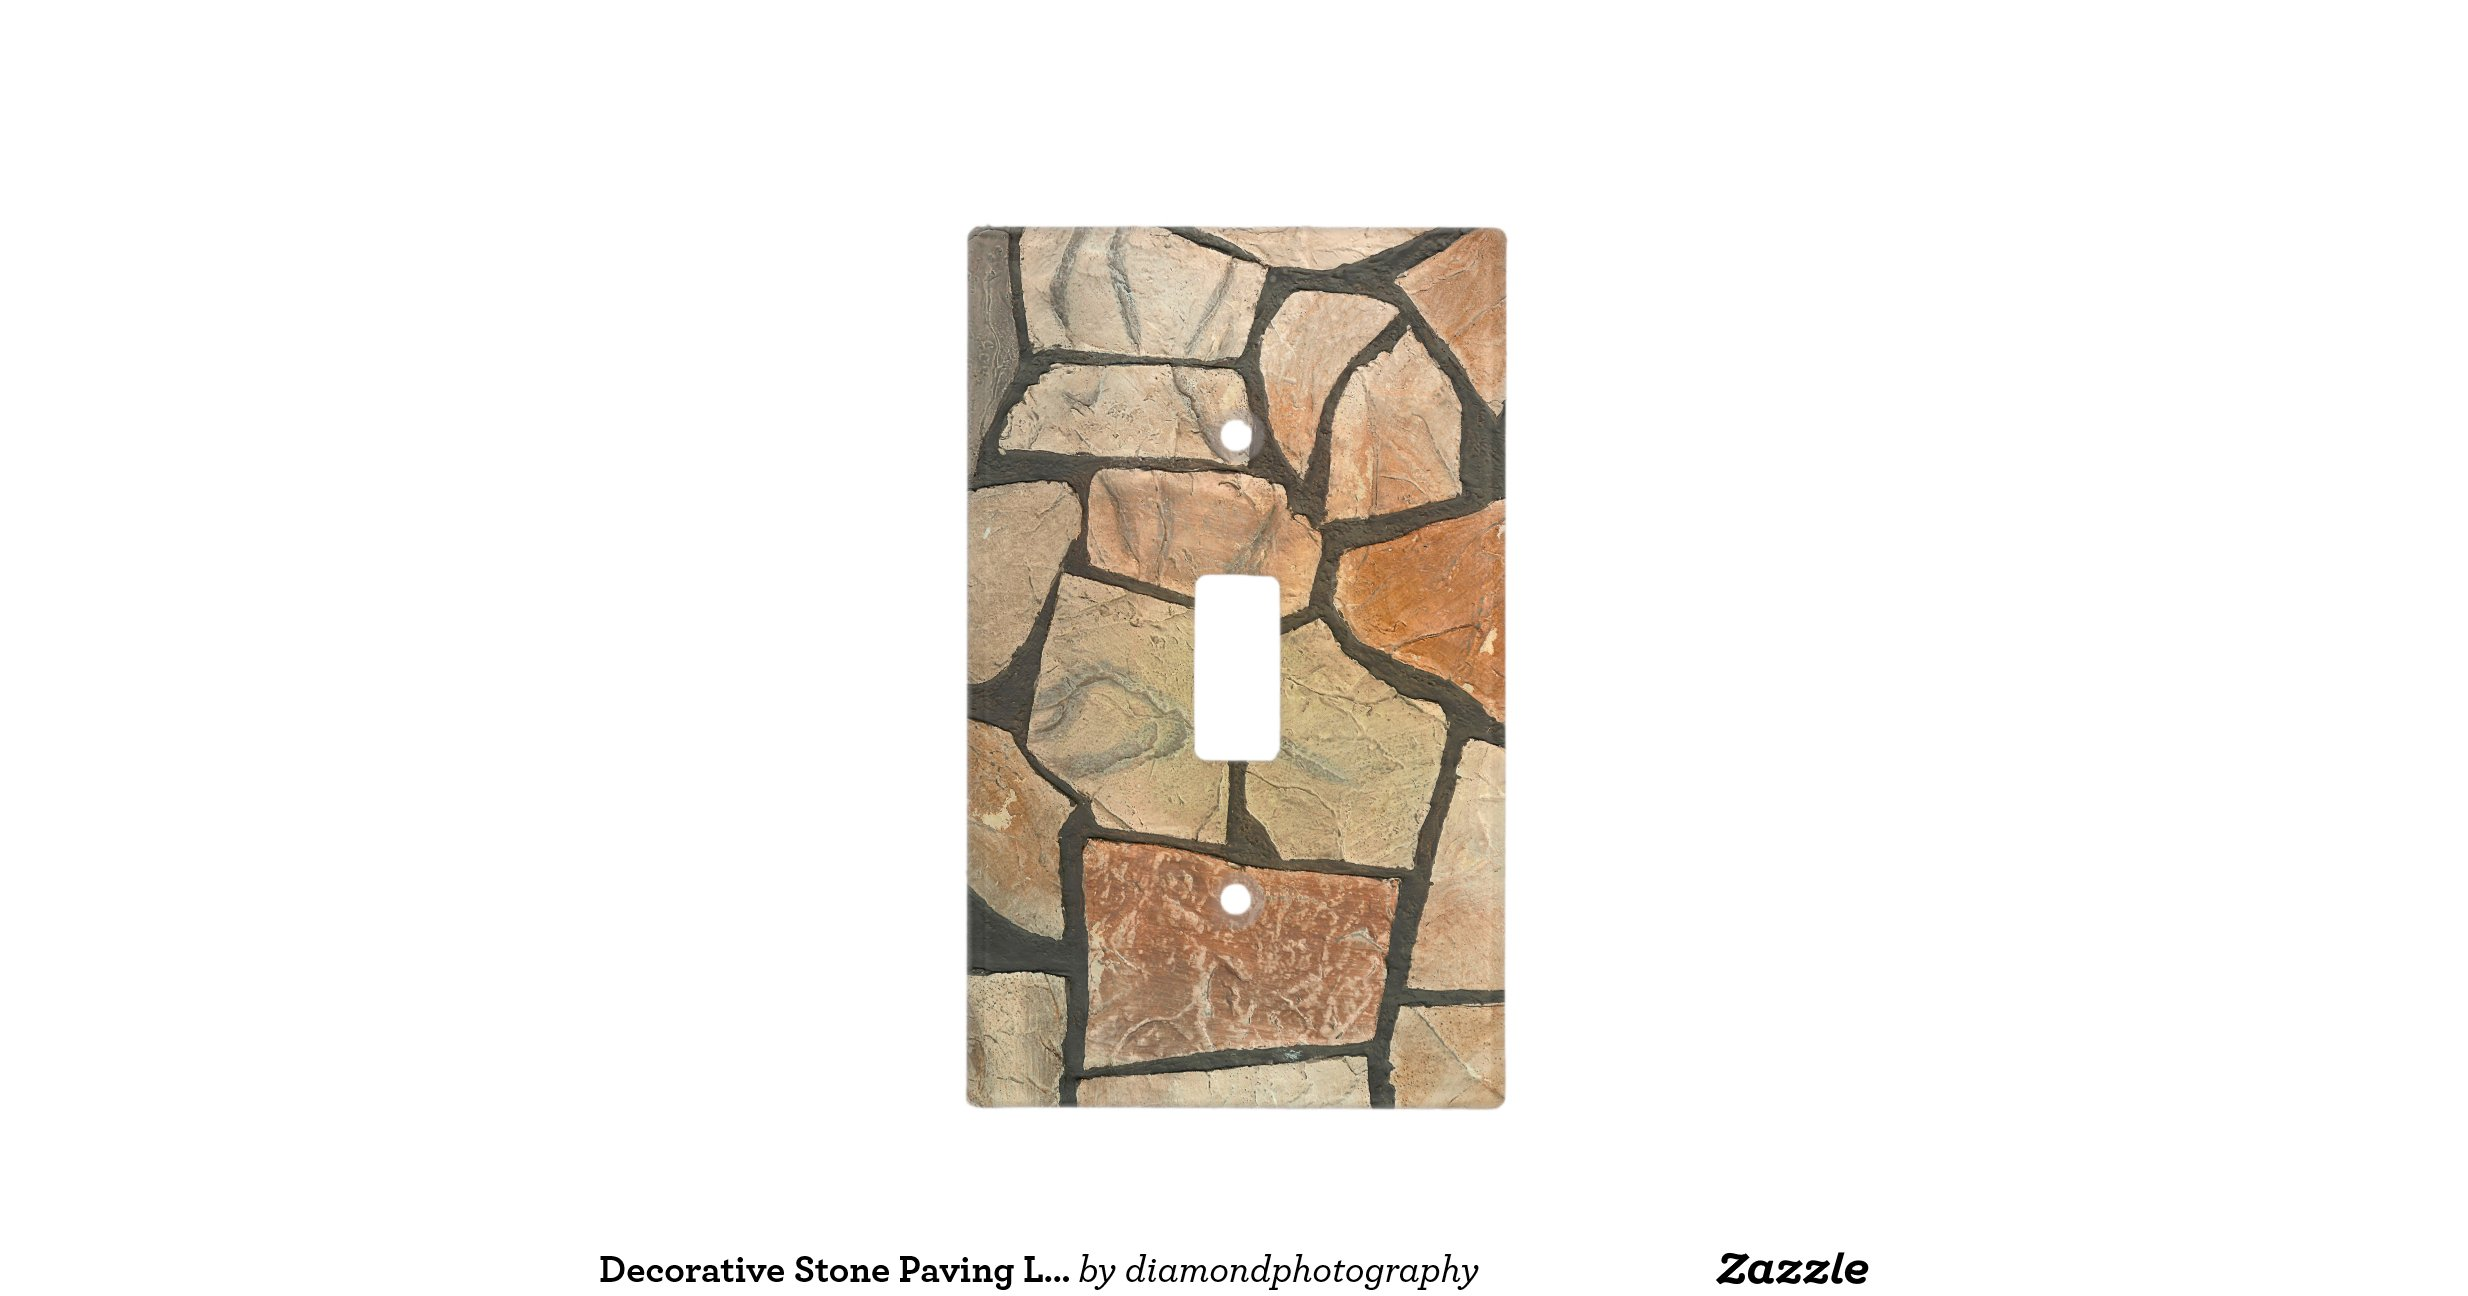 Decorative stone paving look light switch plates zazzle for Decor light switch